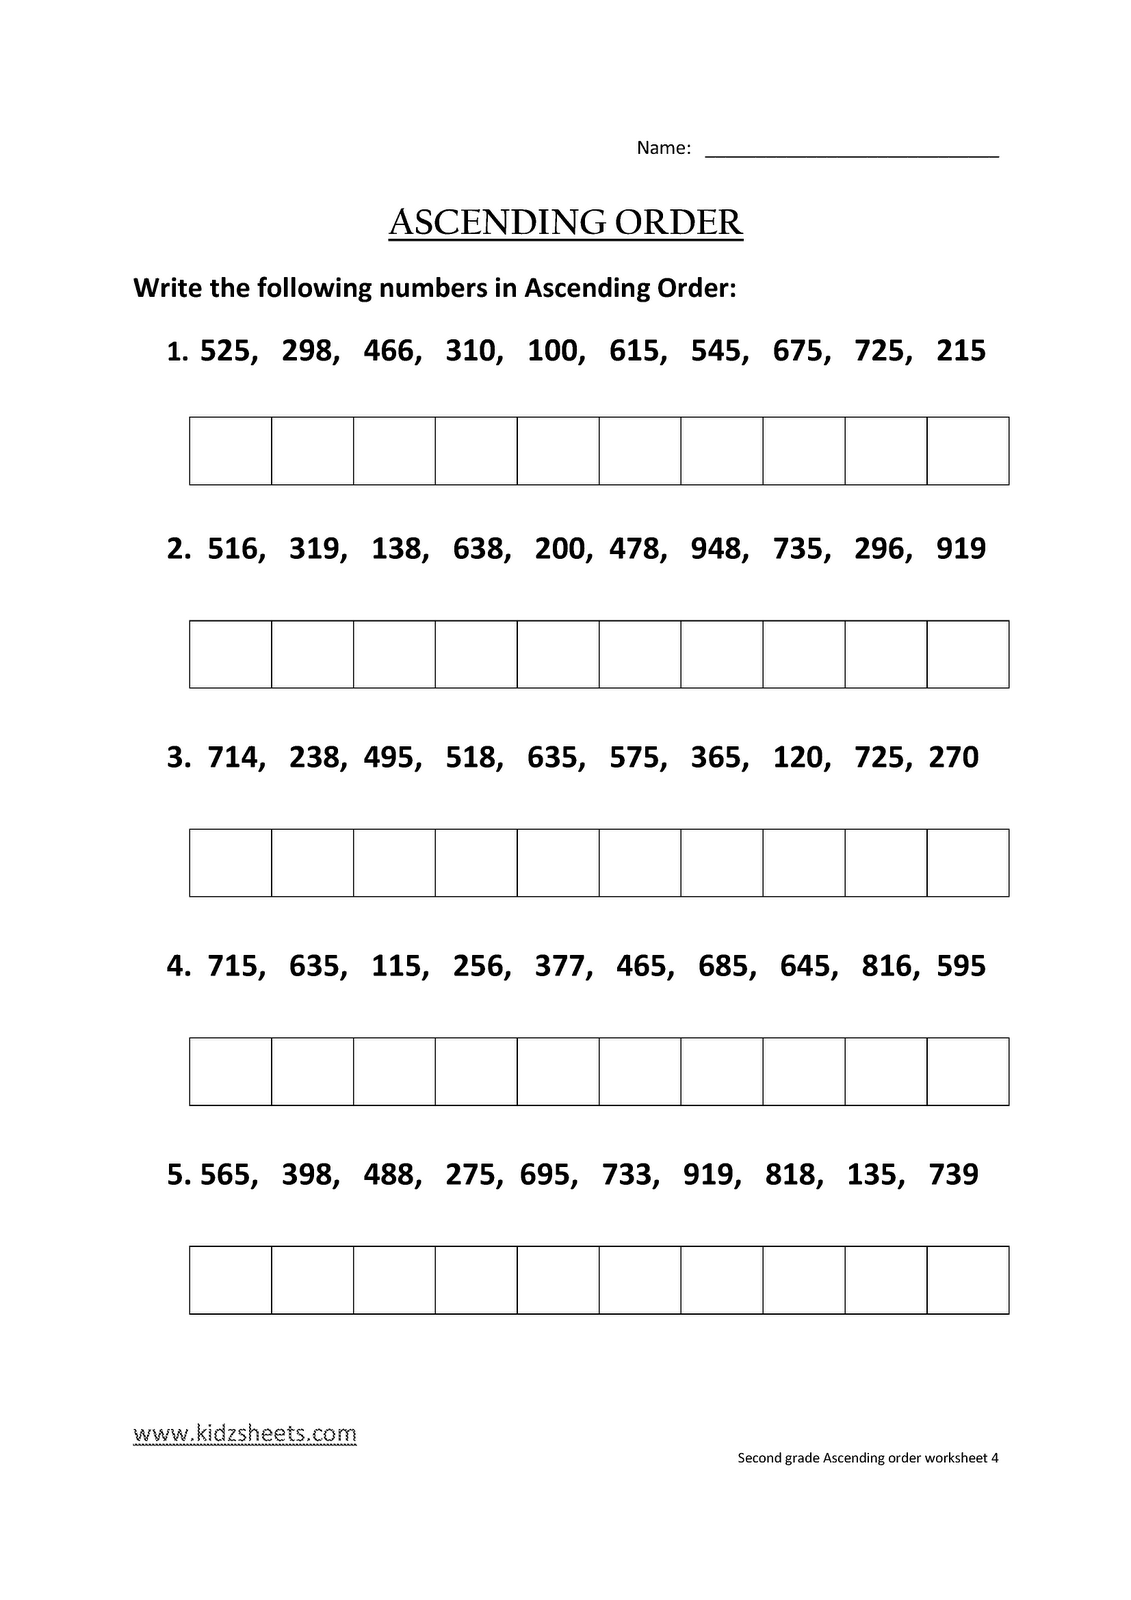 Kidz Worksheets Second Grade Ascending Order Worksheet4